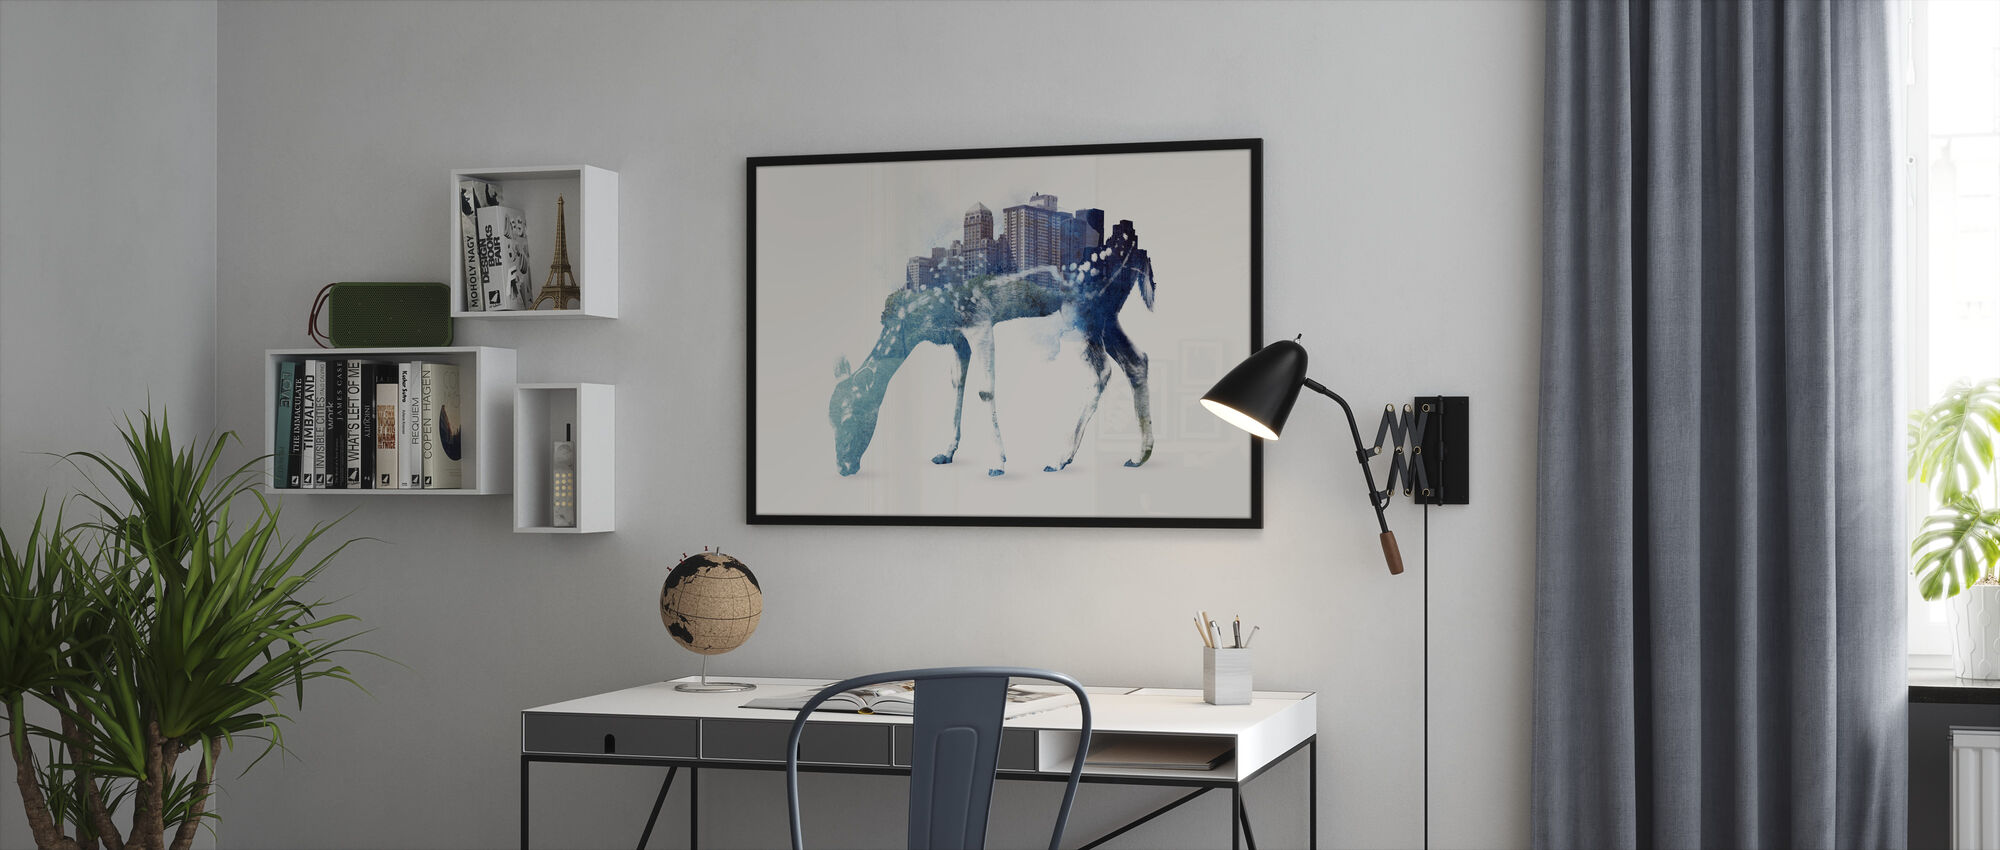 City Deer - Framed print - Office